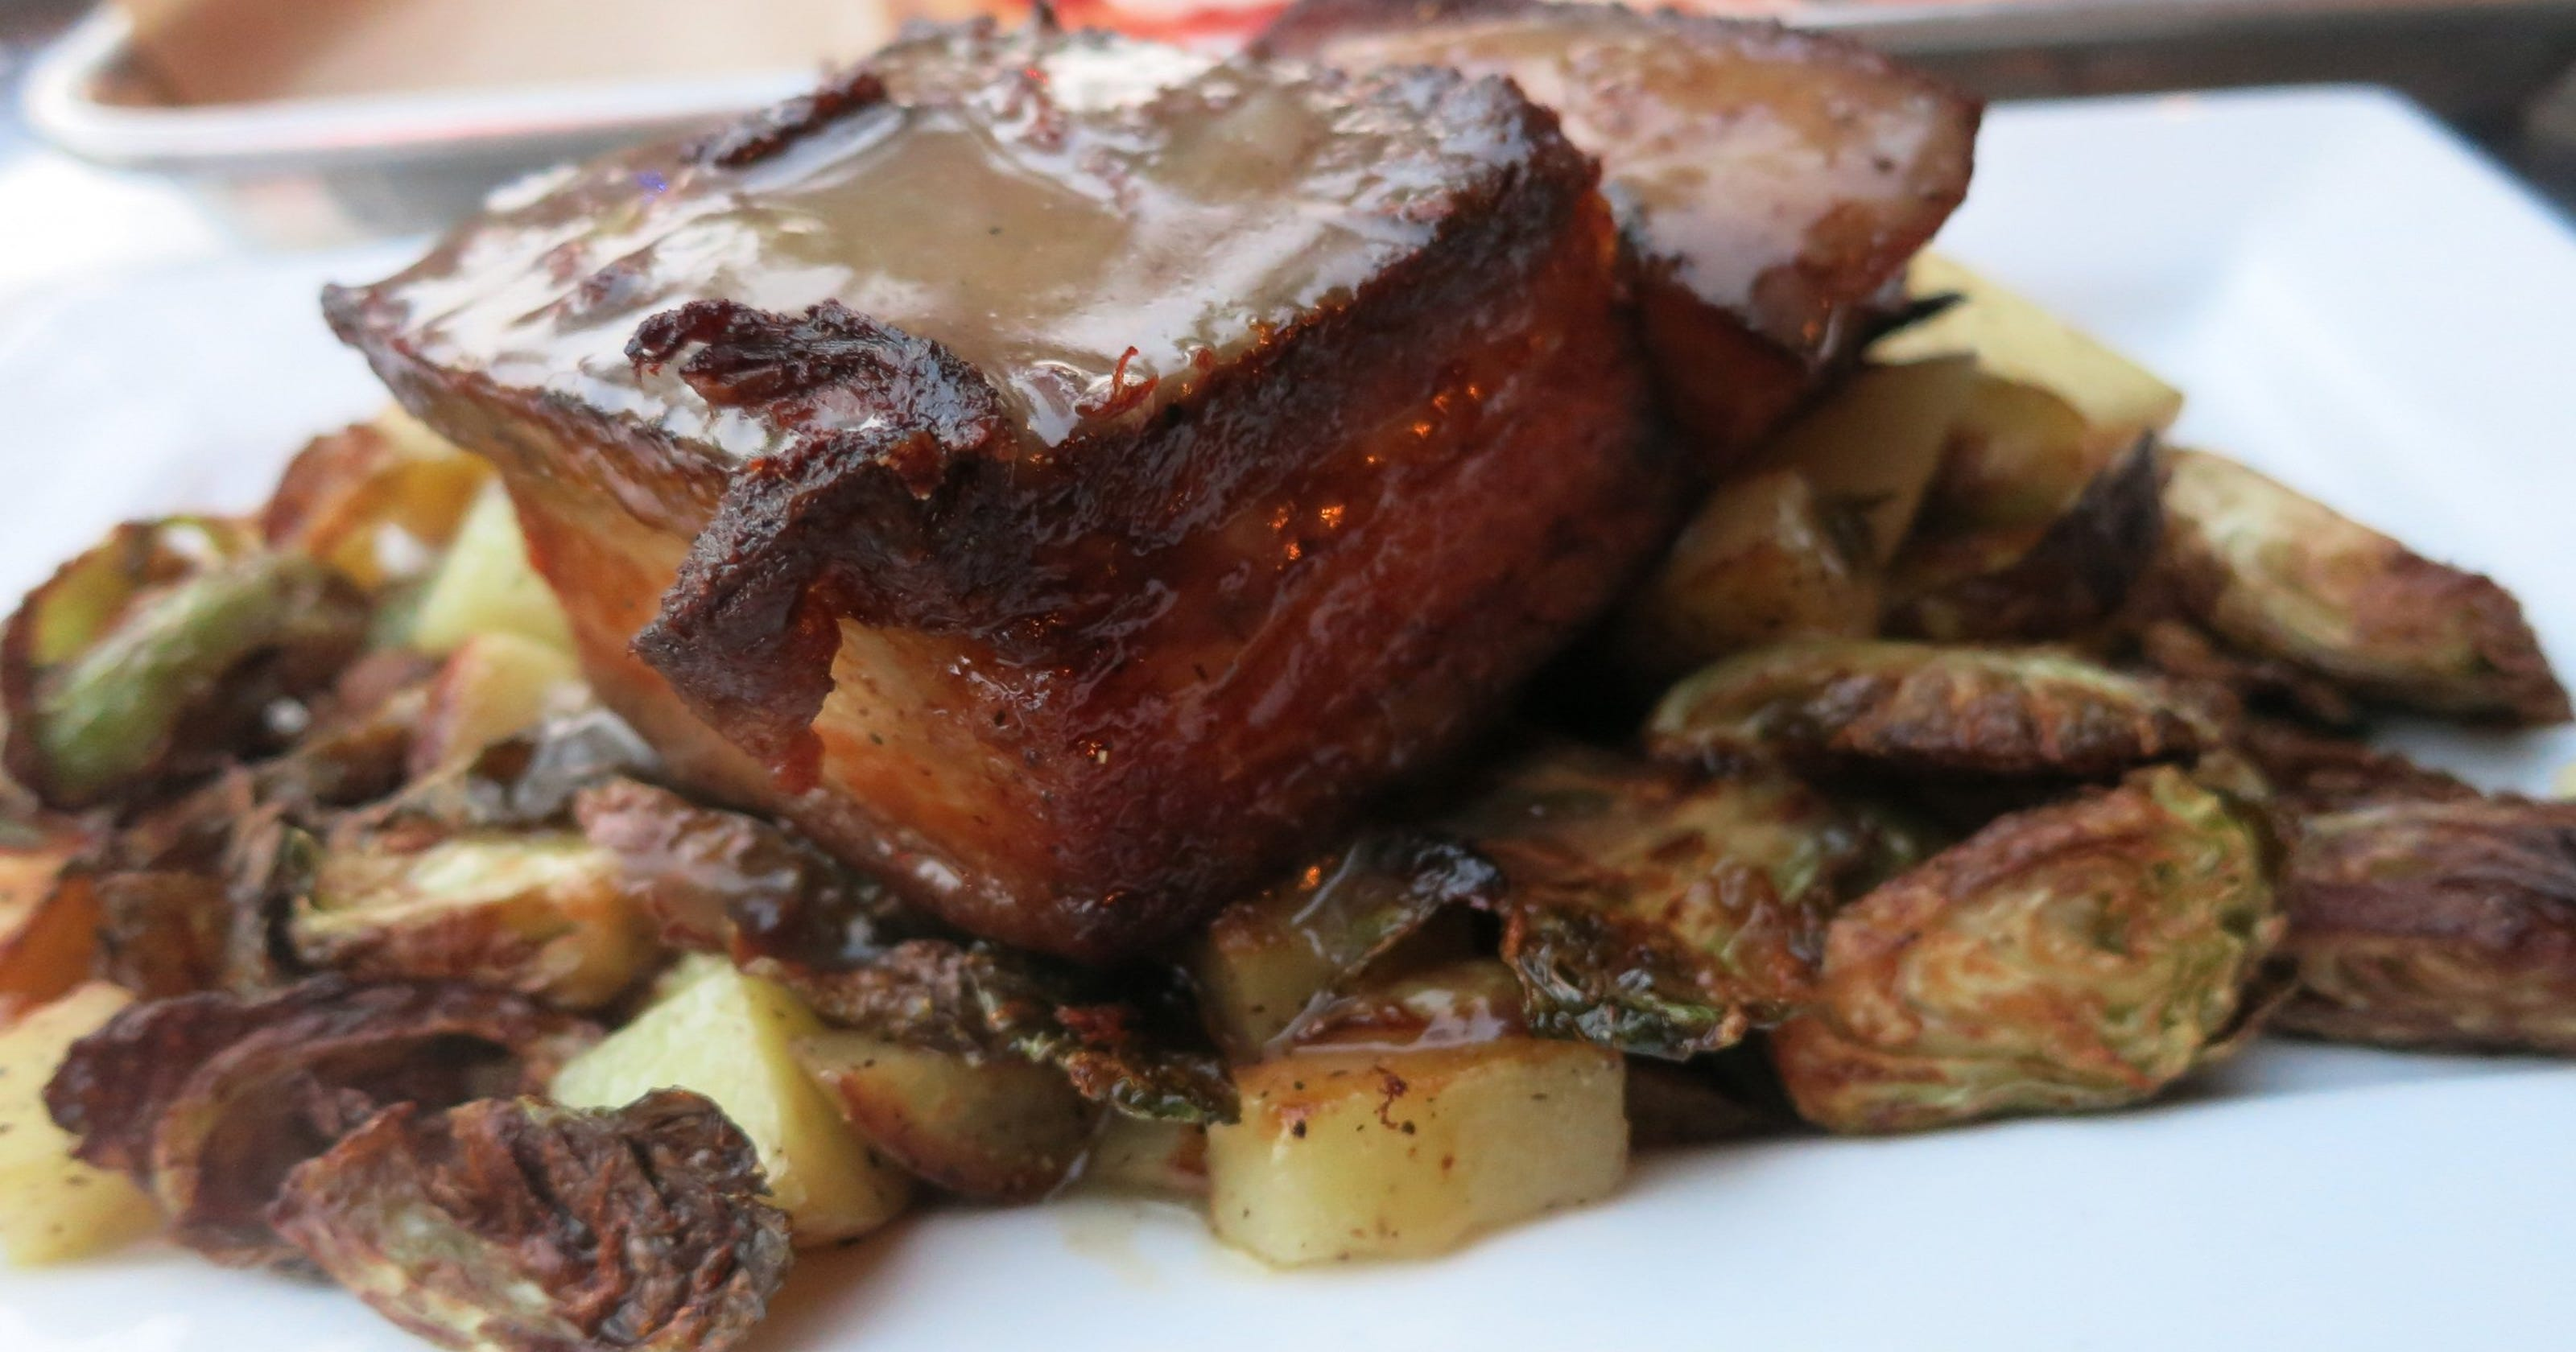 What is pork belly and how is it prepared?